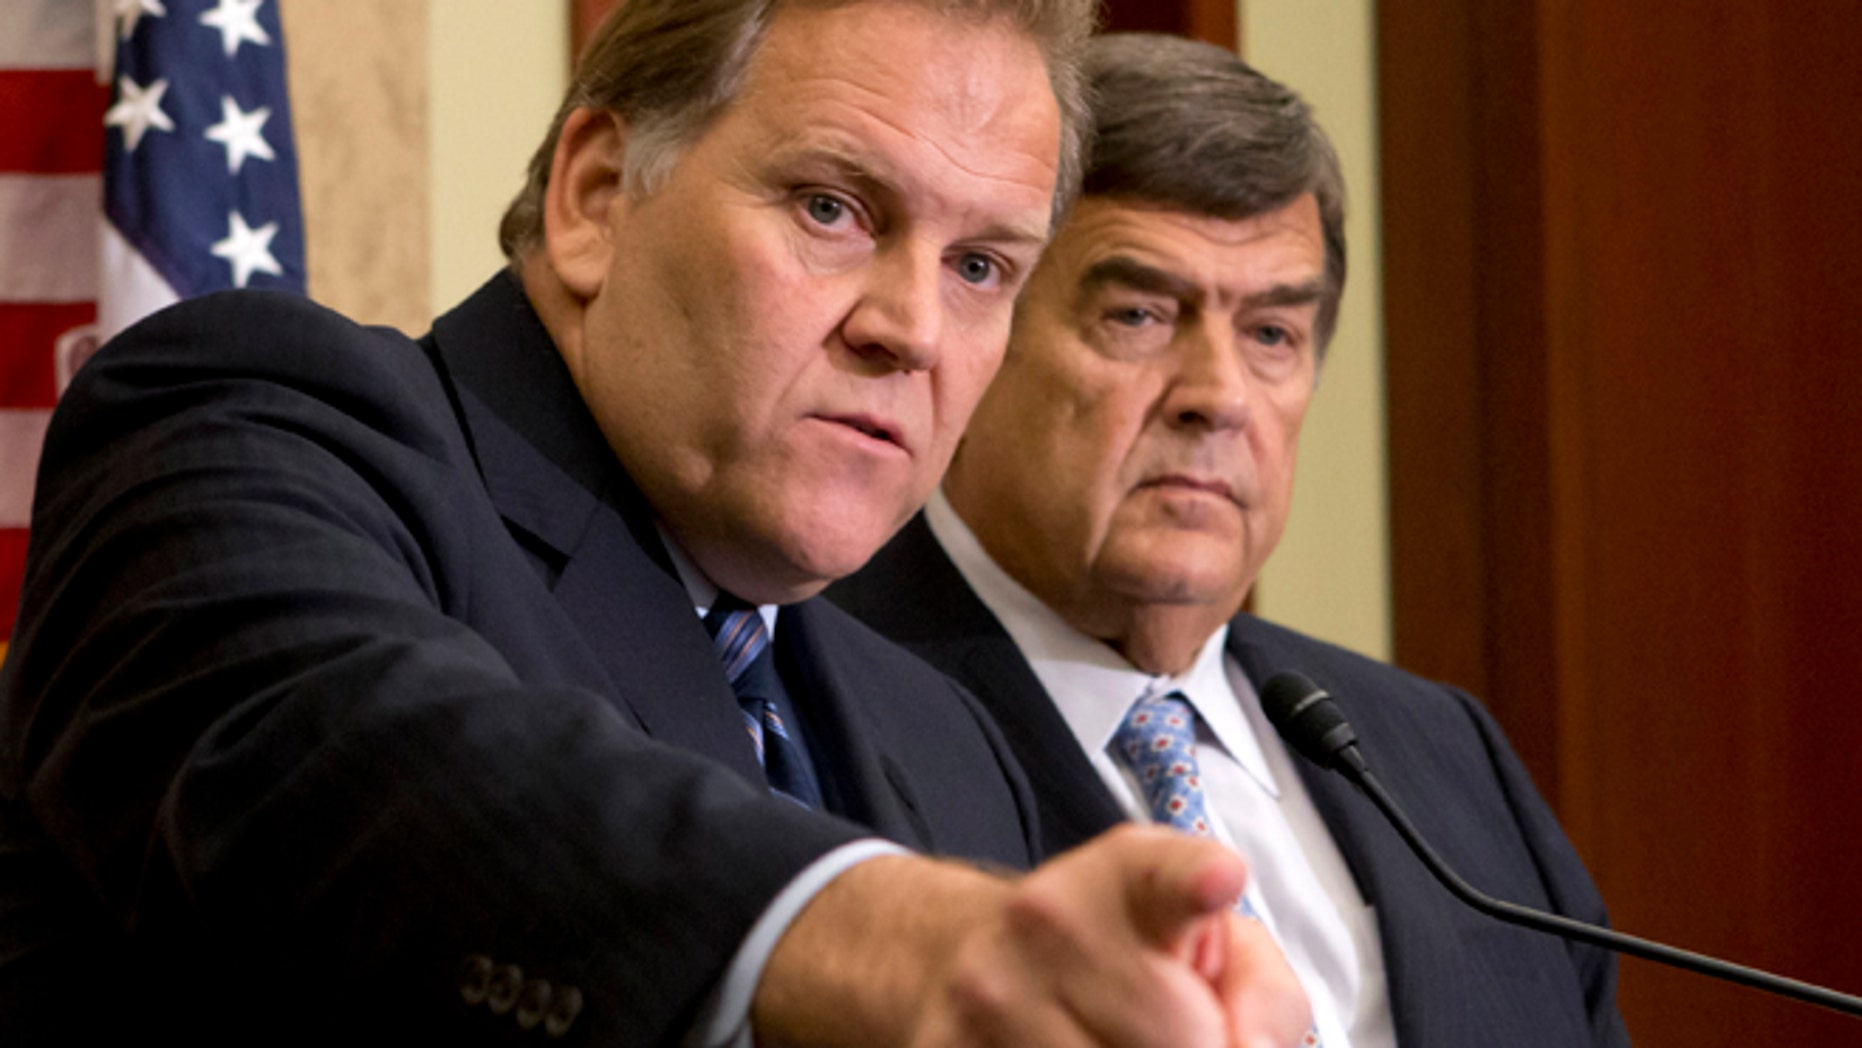 House Intelligence Committee Chairman Rep. Mike Rogers, R-Mich., left, and the committee's ranking Democrat, Rep. C.A. Dutch Ruppersberger, D-Md., participate in a news conference on Capitol Hill in Washington.